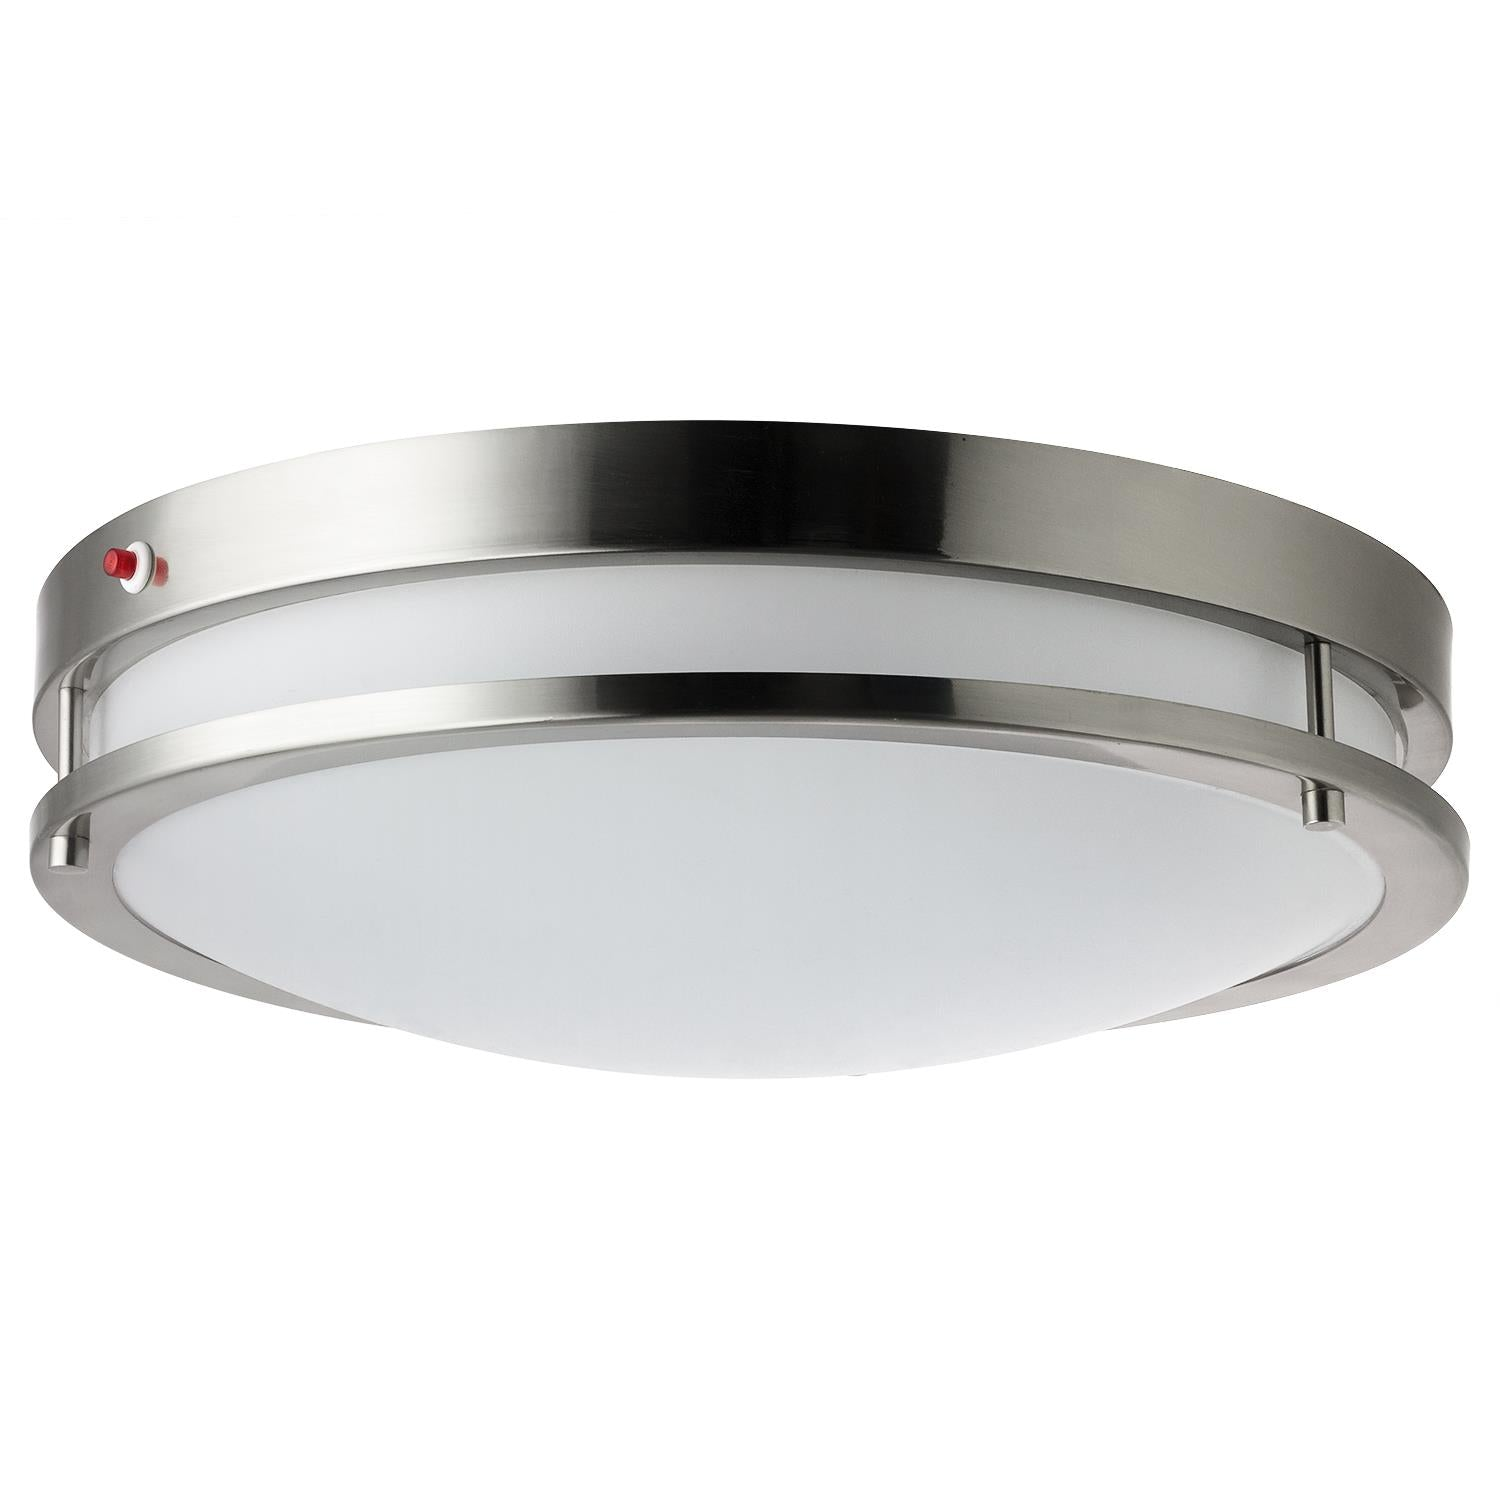 SUNLITE 28w Dome Ceiling Light Fixture in Brushed Nickel - 4000K